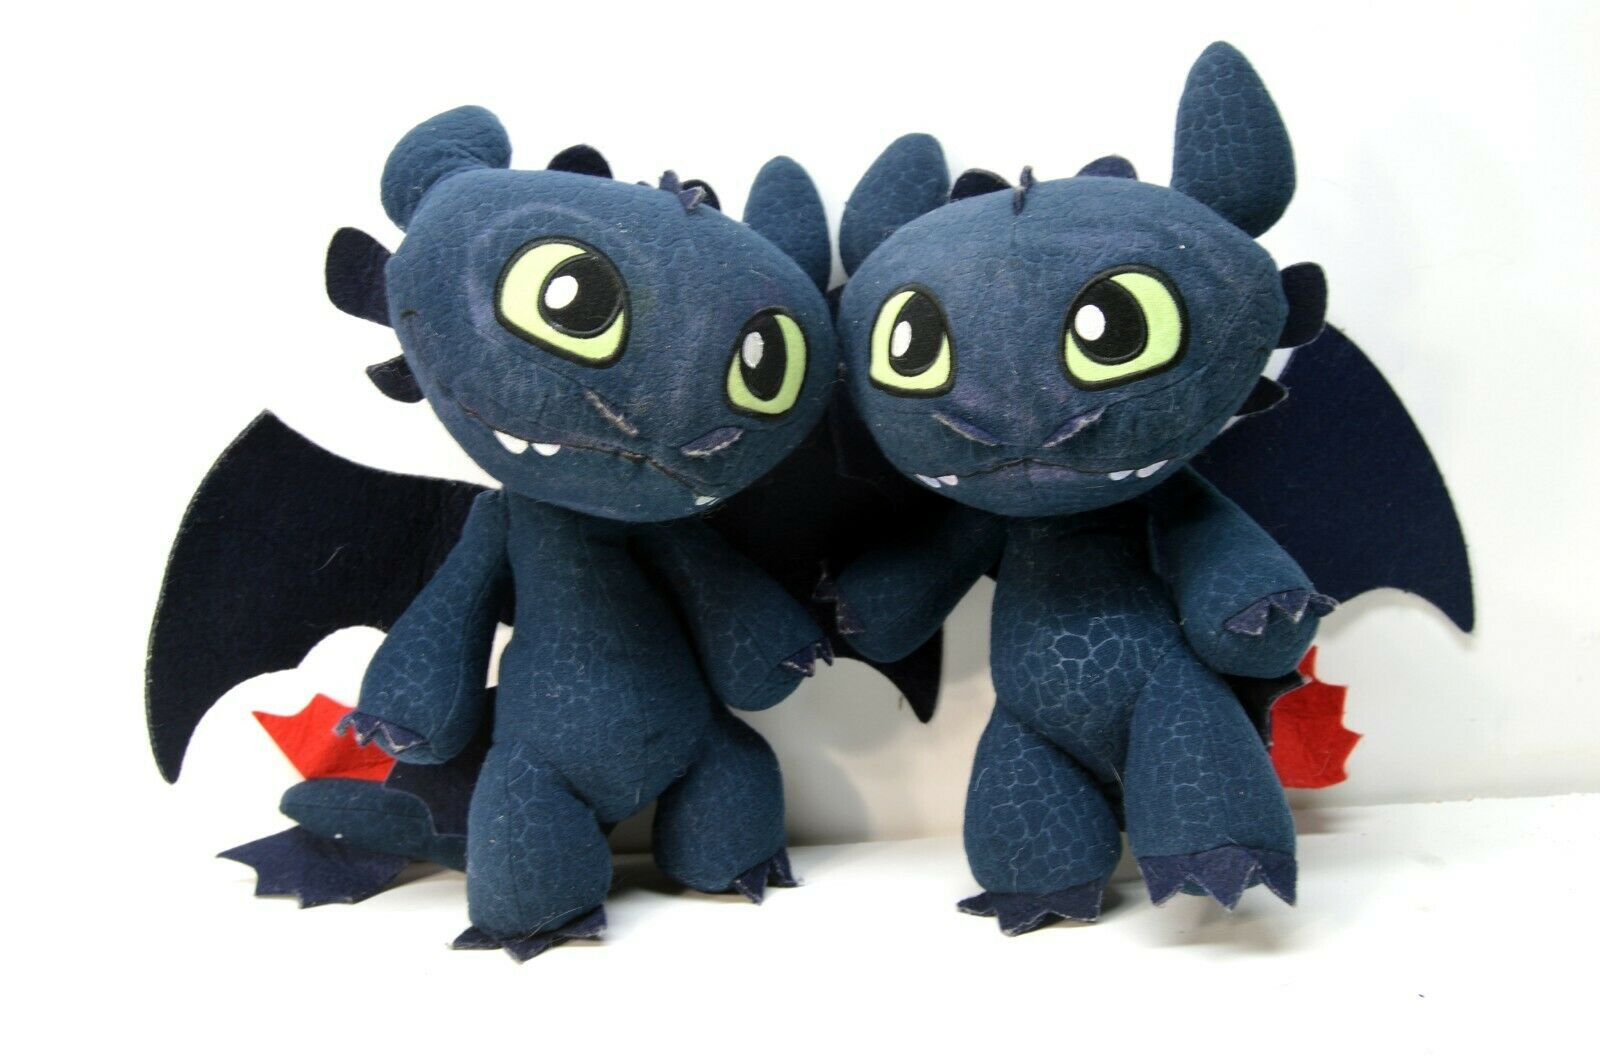 (2) TOOTHLESS How to Train Your Dragon Plush Stuffed Doll Soft Toys 12